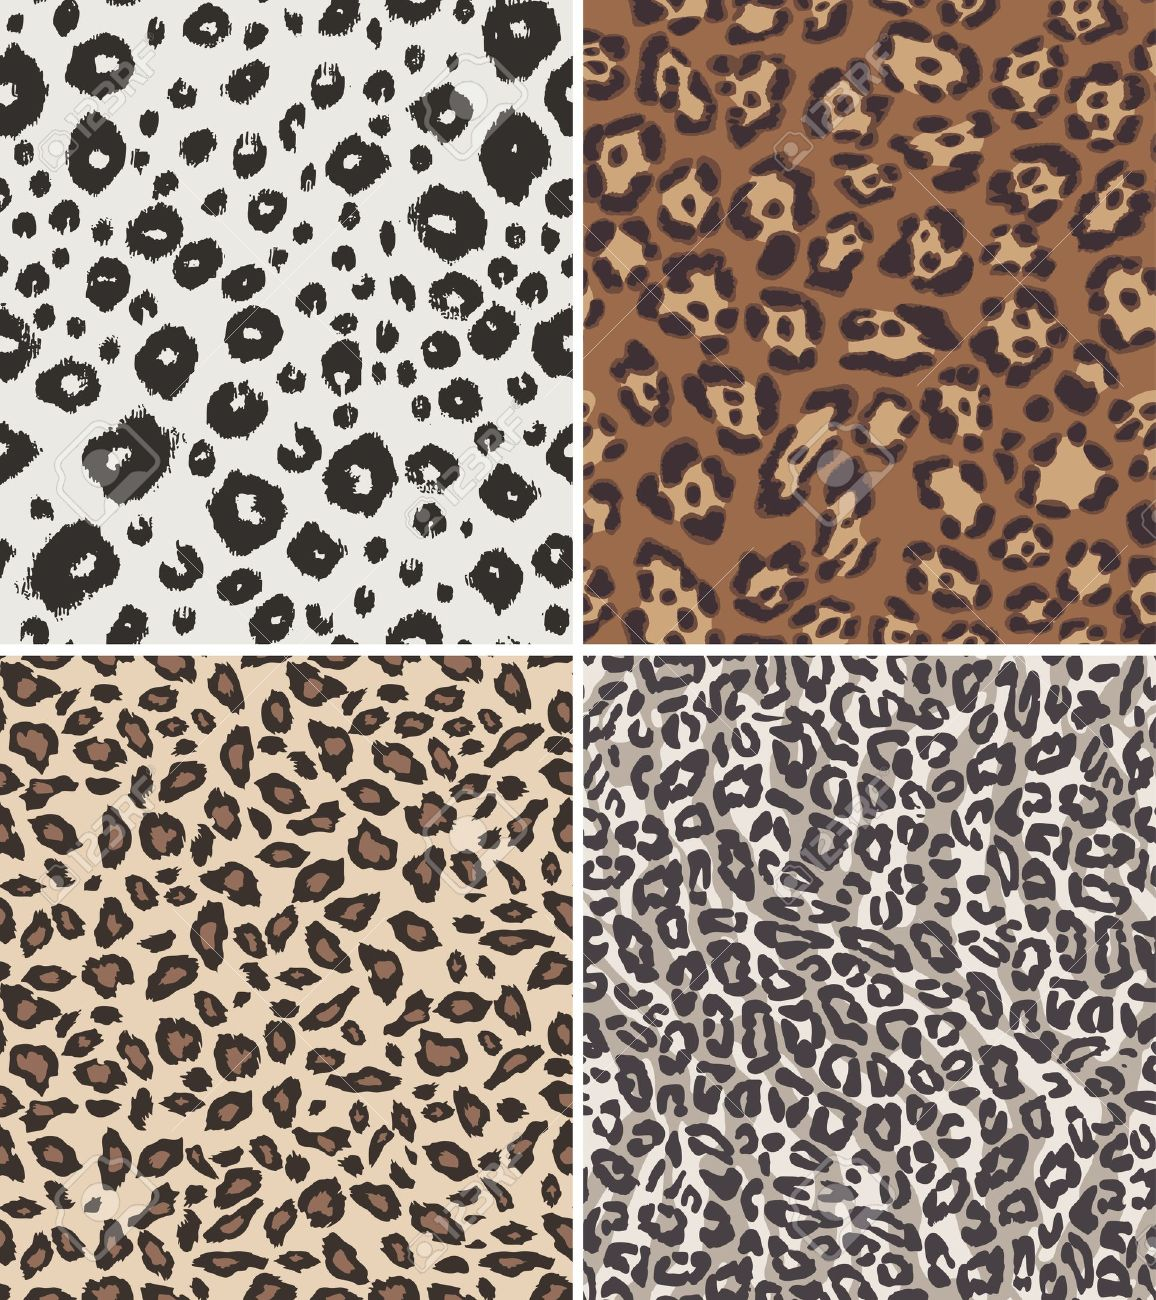 11,056 Leopard Stock Vector Illustration And Royalty Free Leopard.